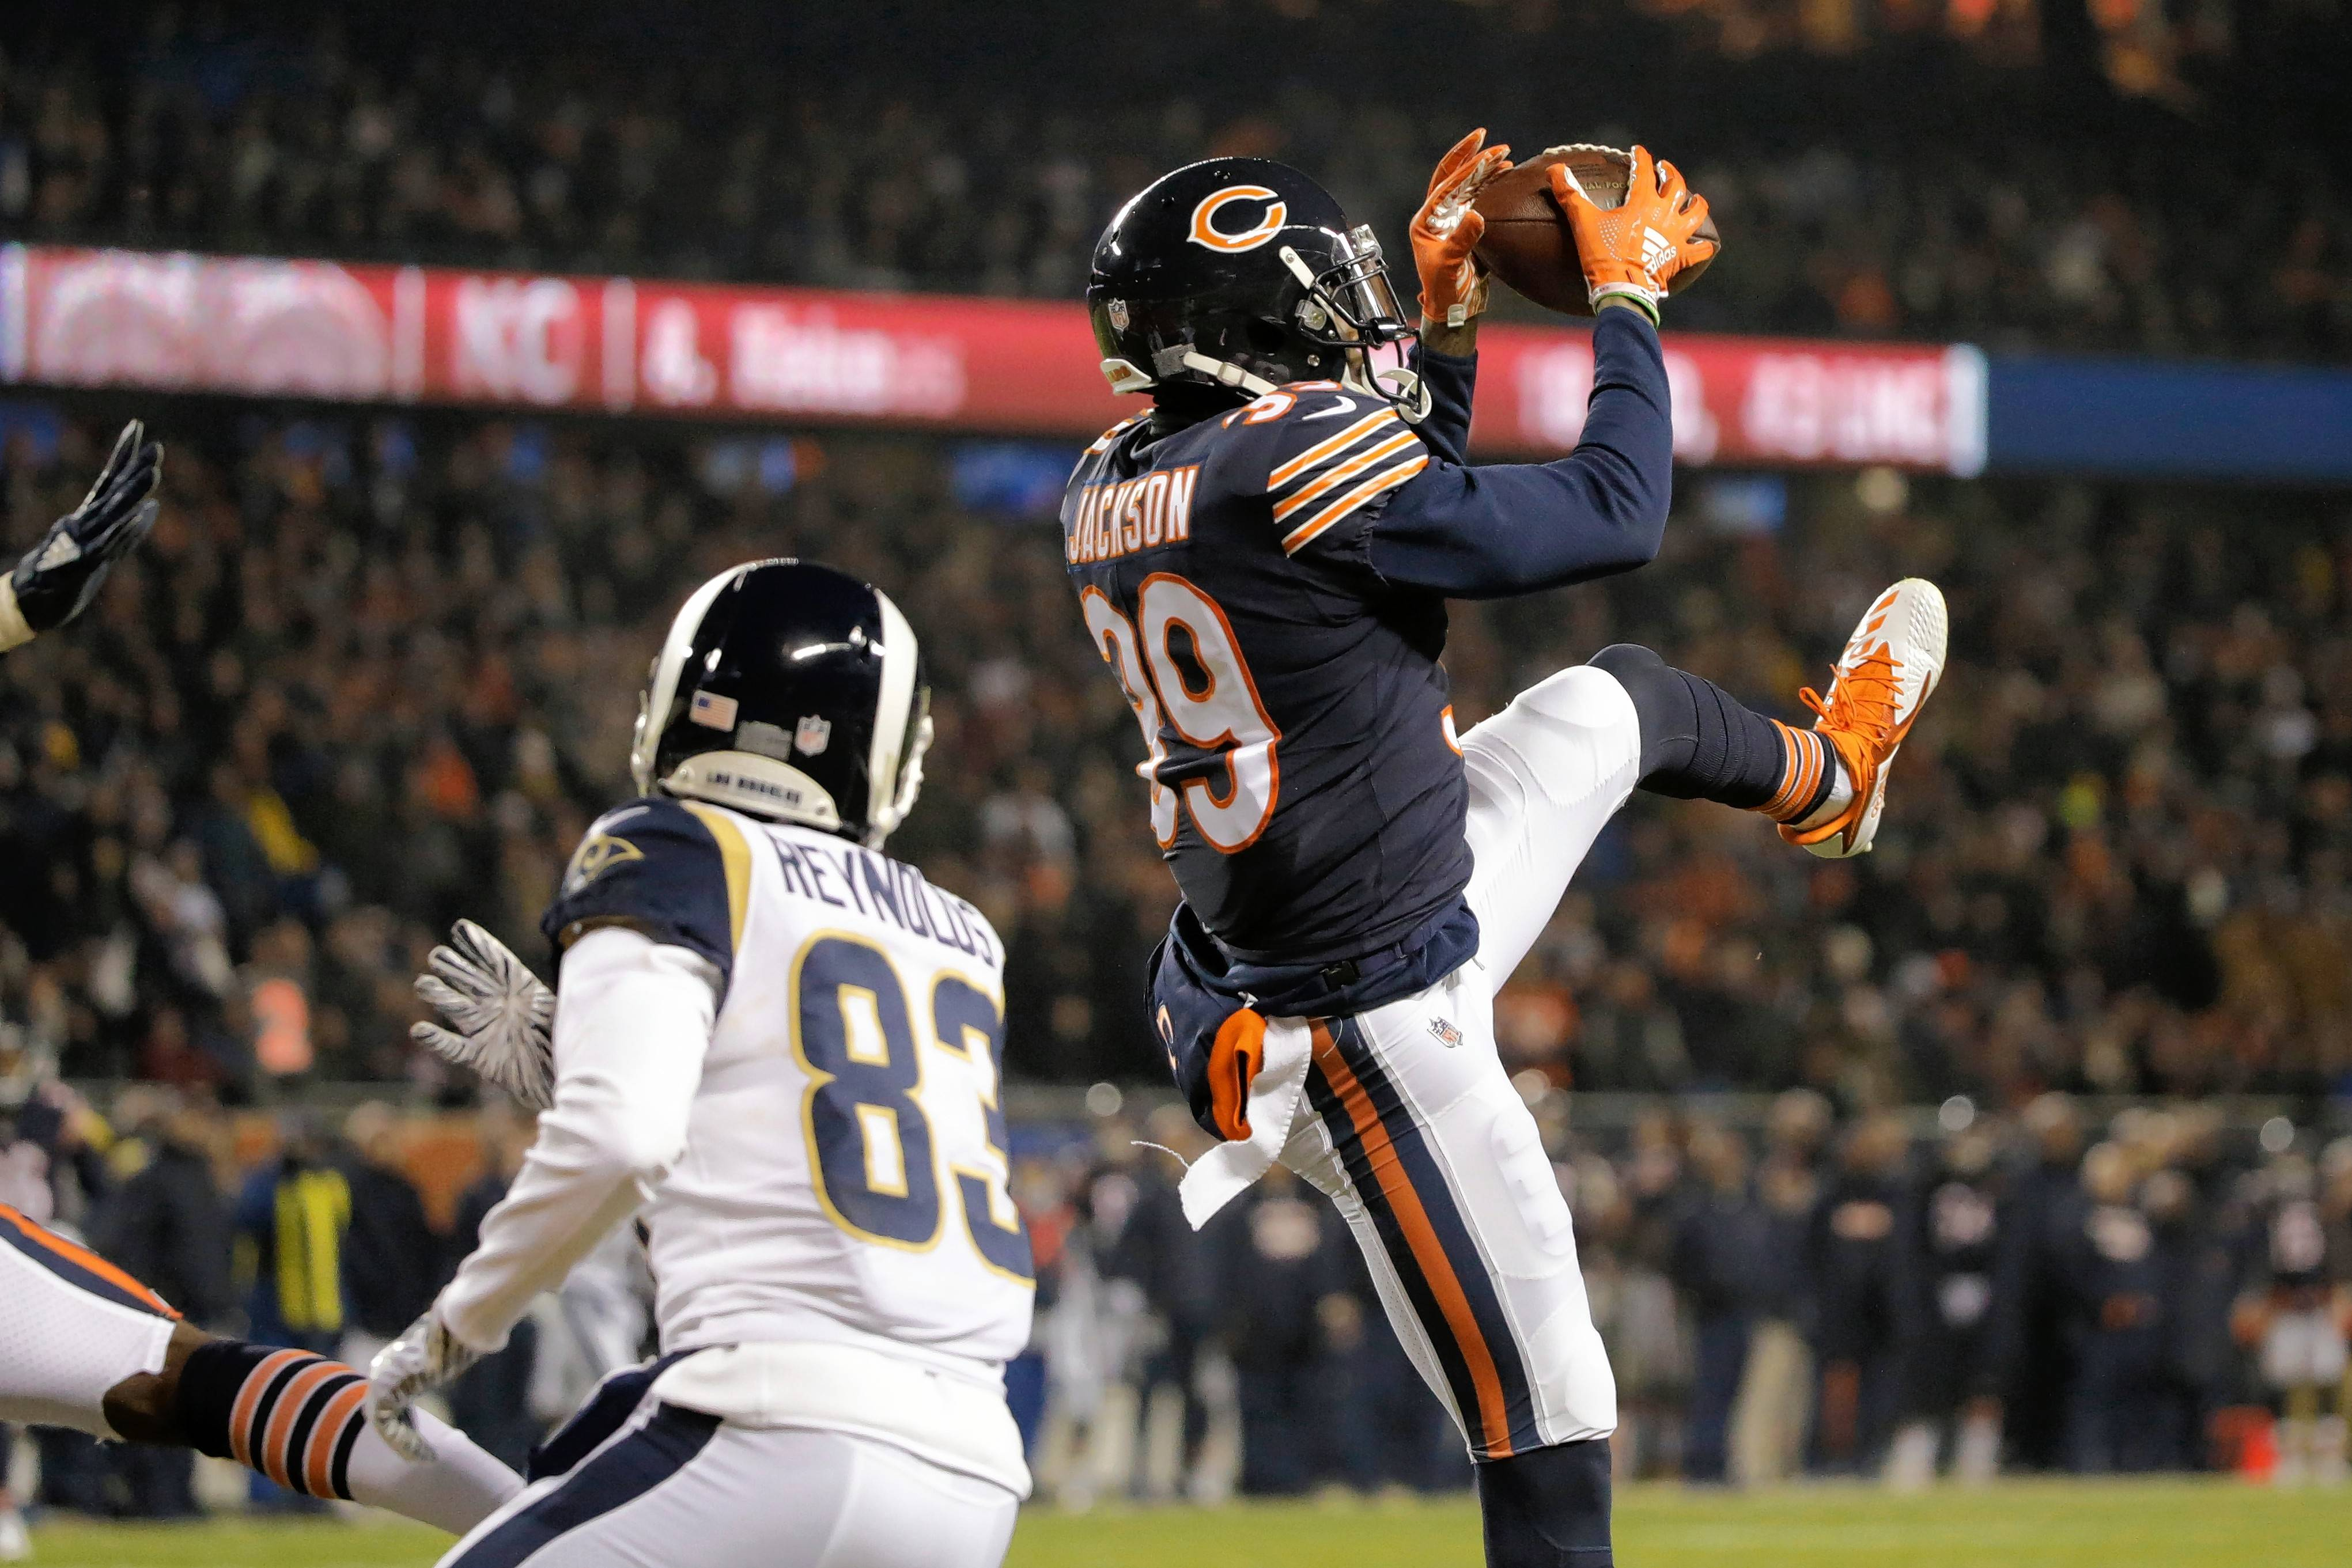 Chicago Bears safety Eddie Jackson (39) intercepts a pass intended for Los Angeles Rams wide receiver Josh Reynolds (83) during the first half of an NFL football game Sunday, Dec. 9, 2018, in Chicago.